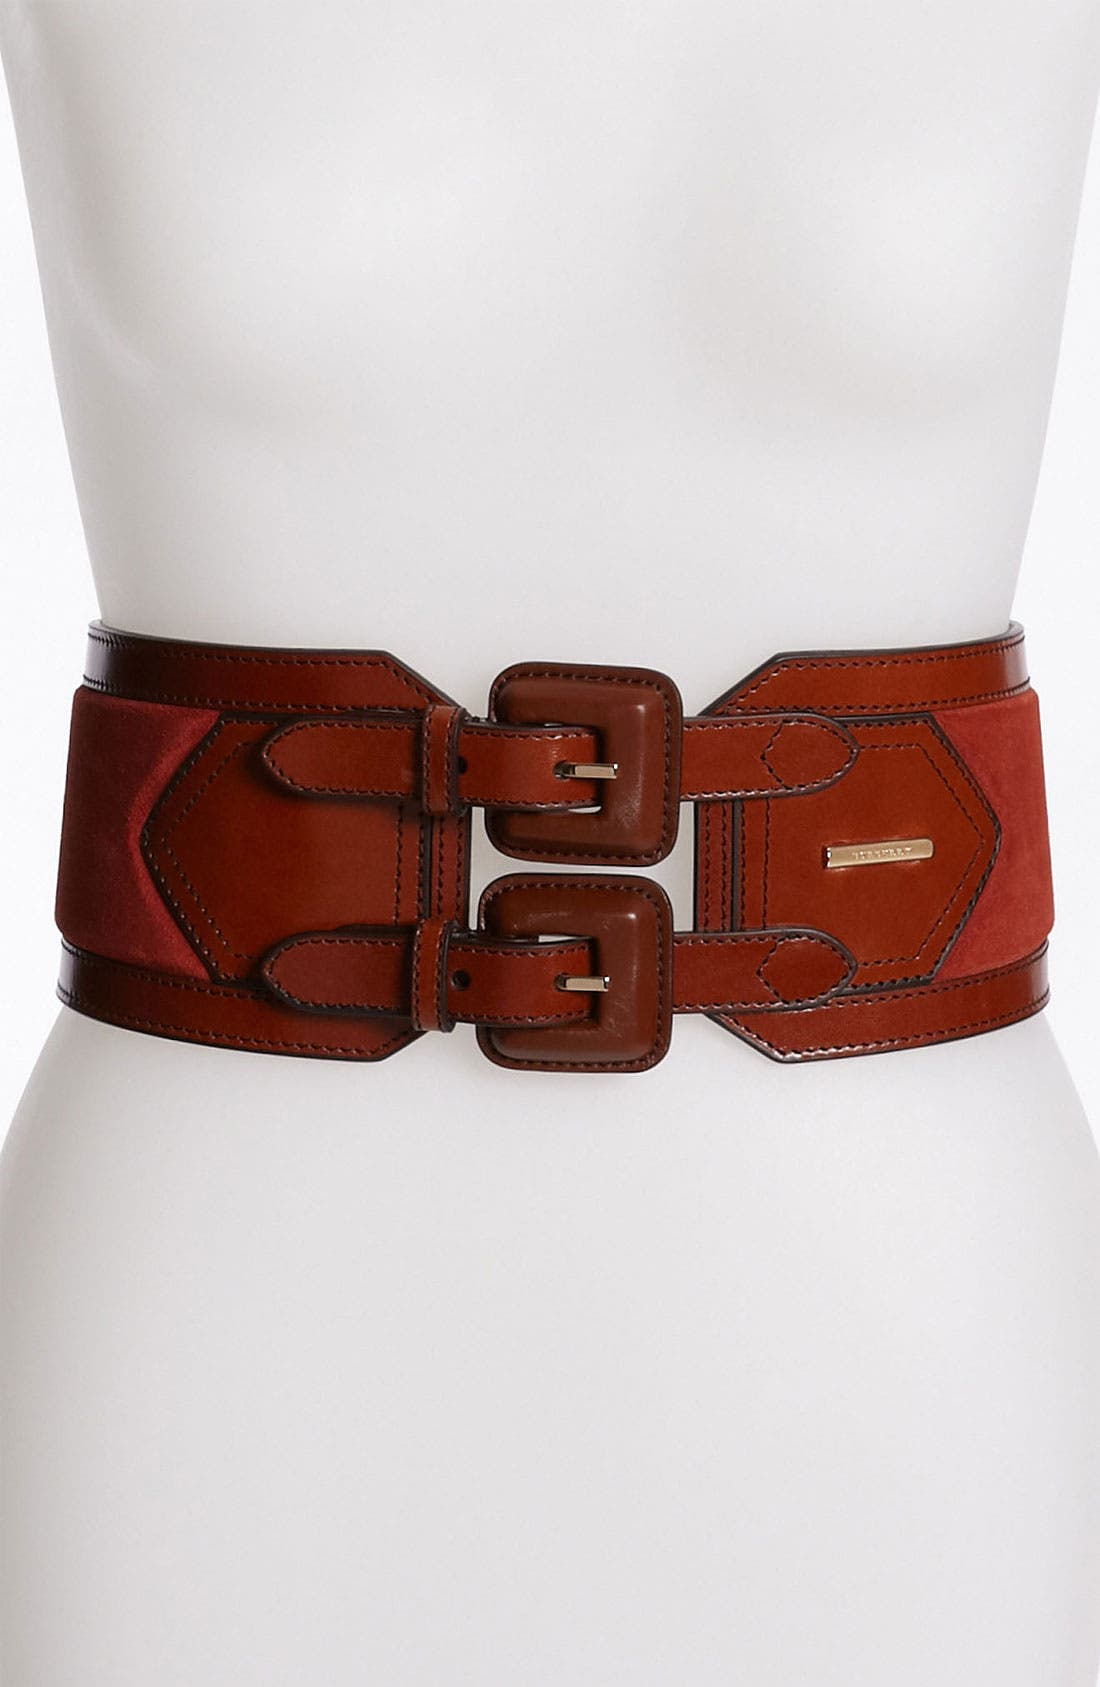 Main Image - Burberry Leather & Suede Belt